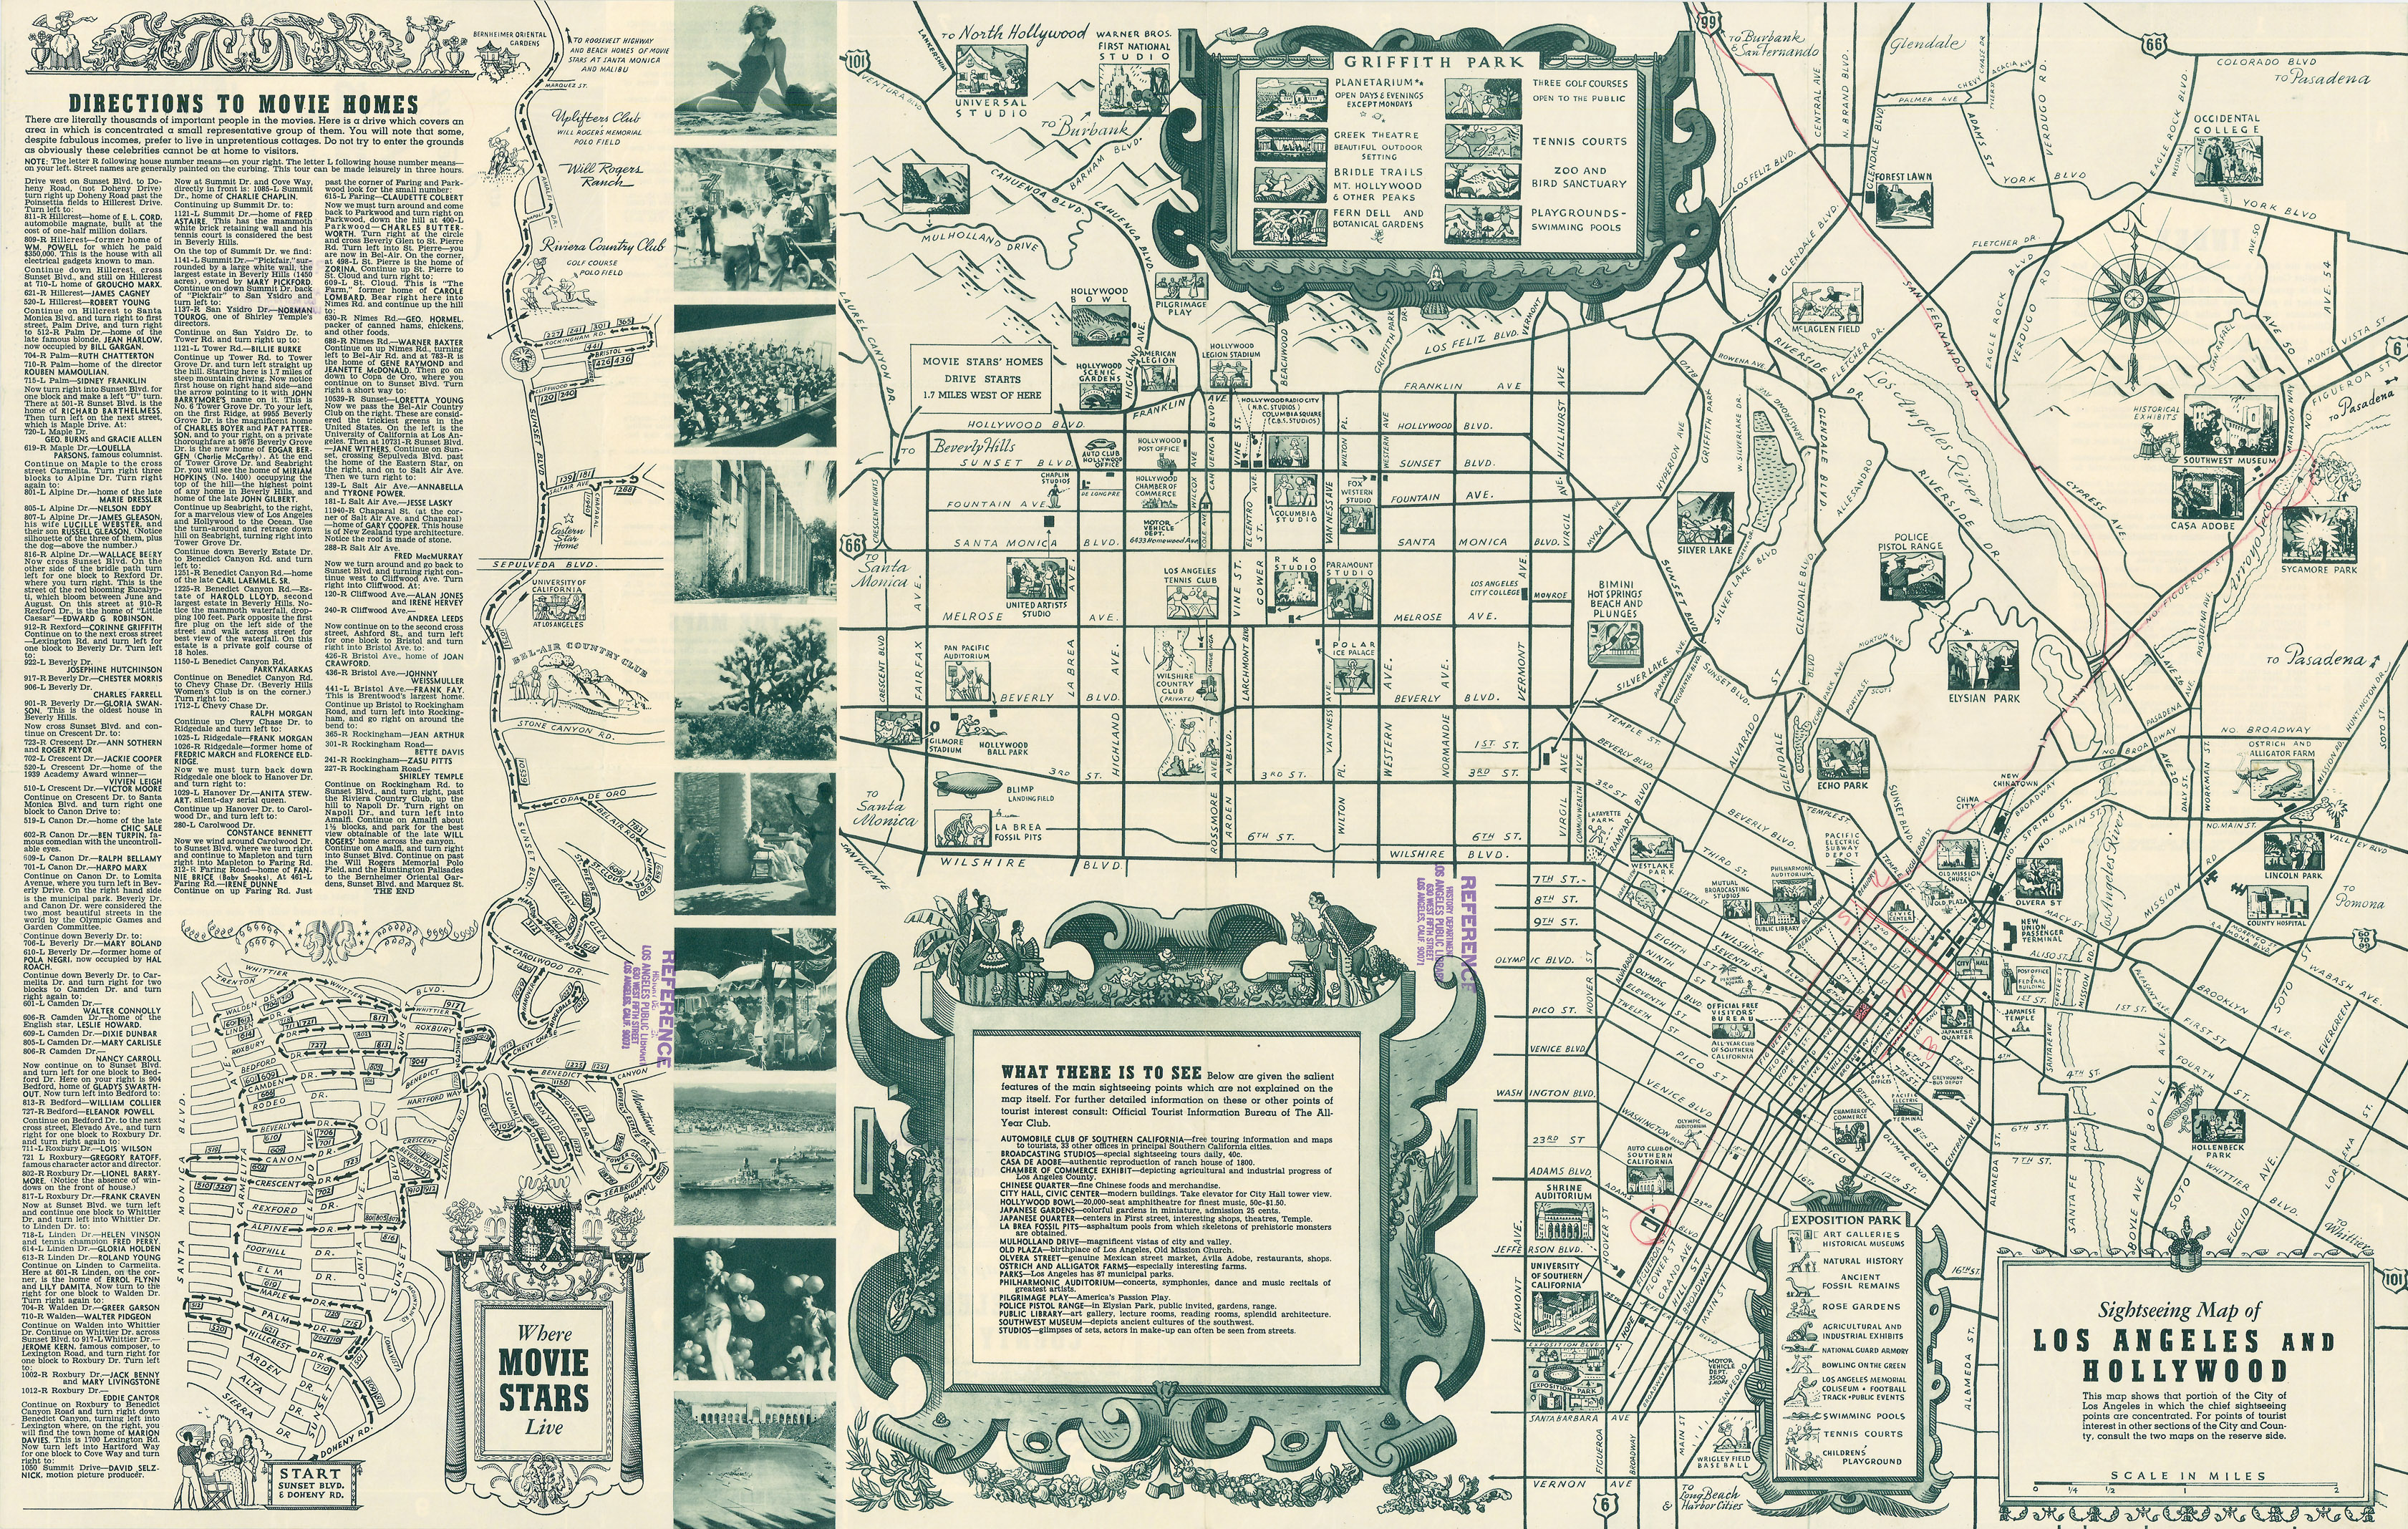 Sightseeing And Stars Homes Map Of The 1940s